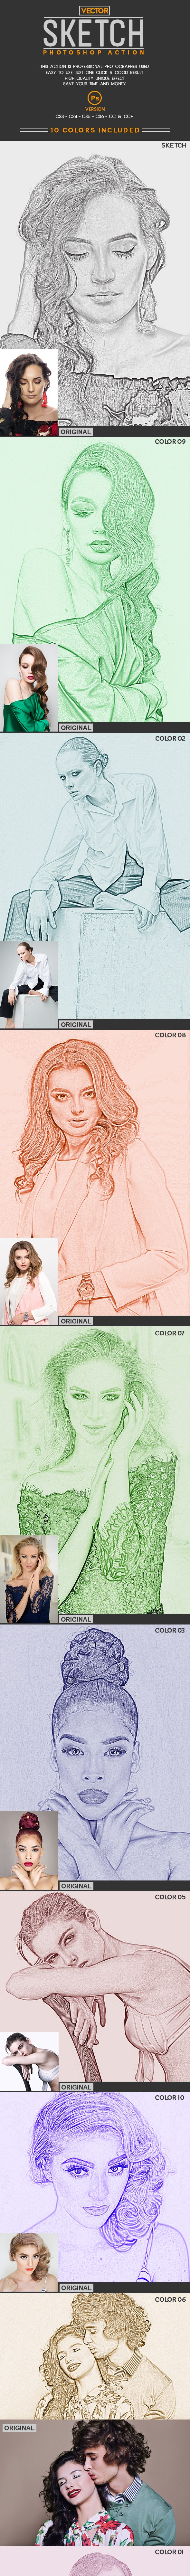 Vector Sketch Photoshop Action - Photo Effects Actions